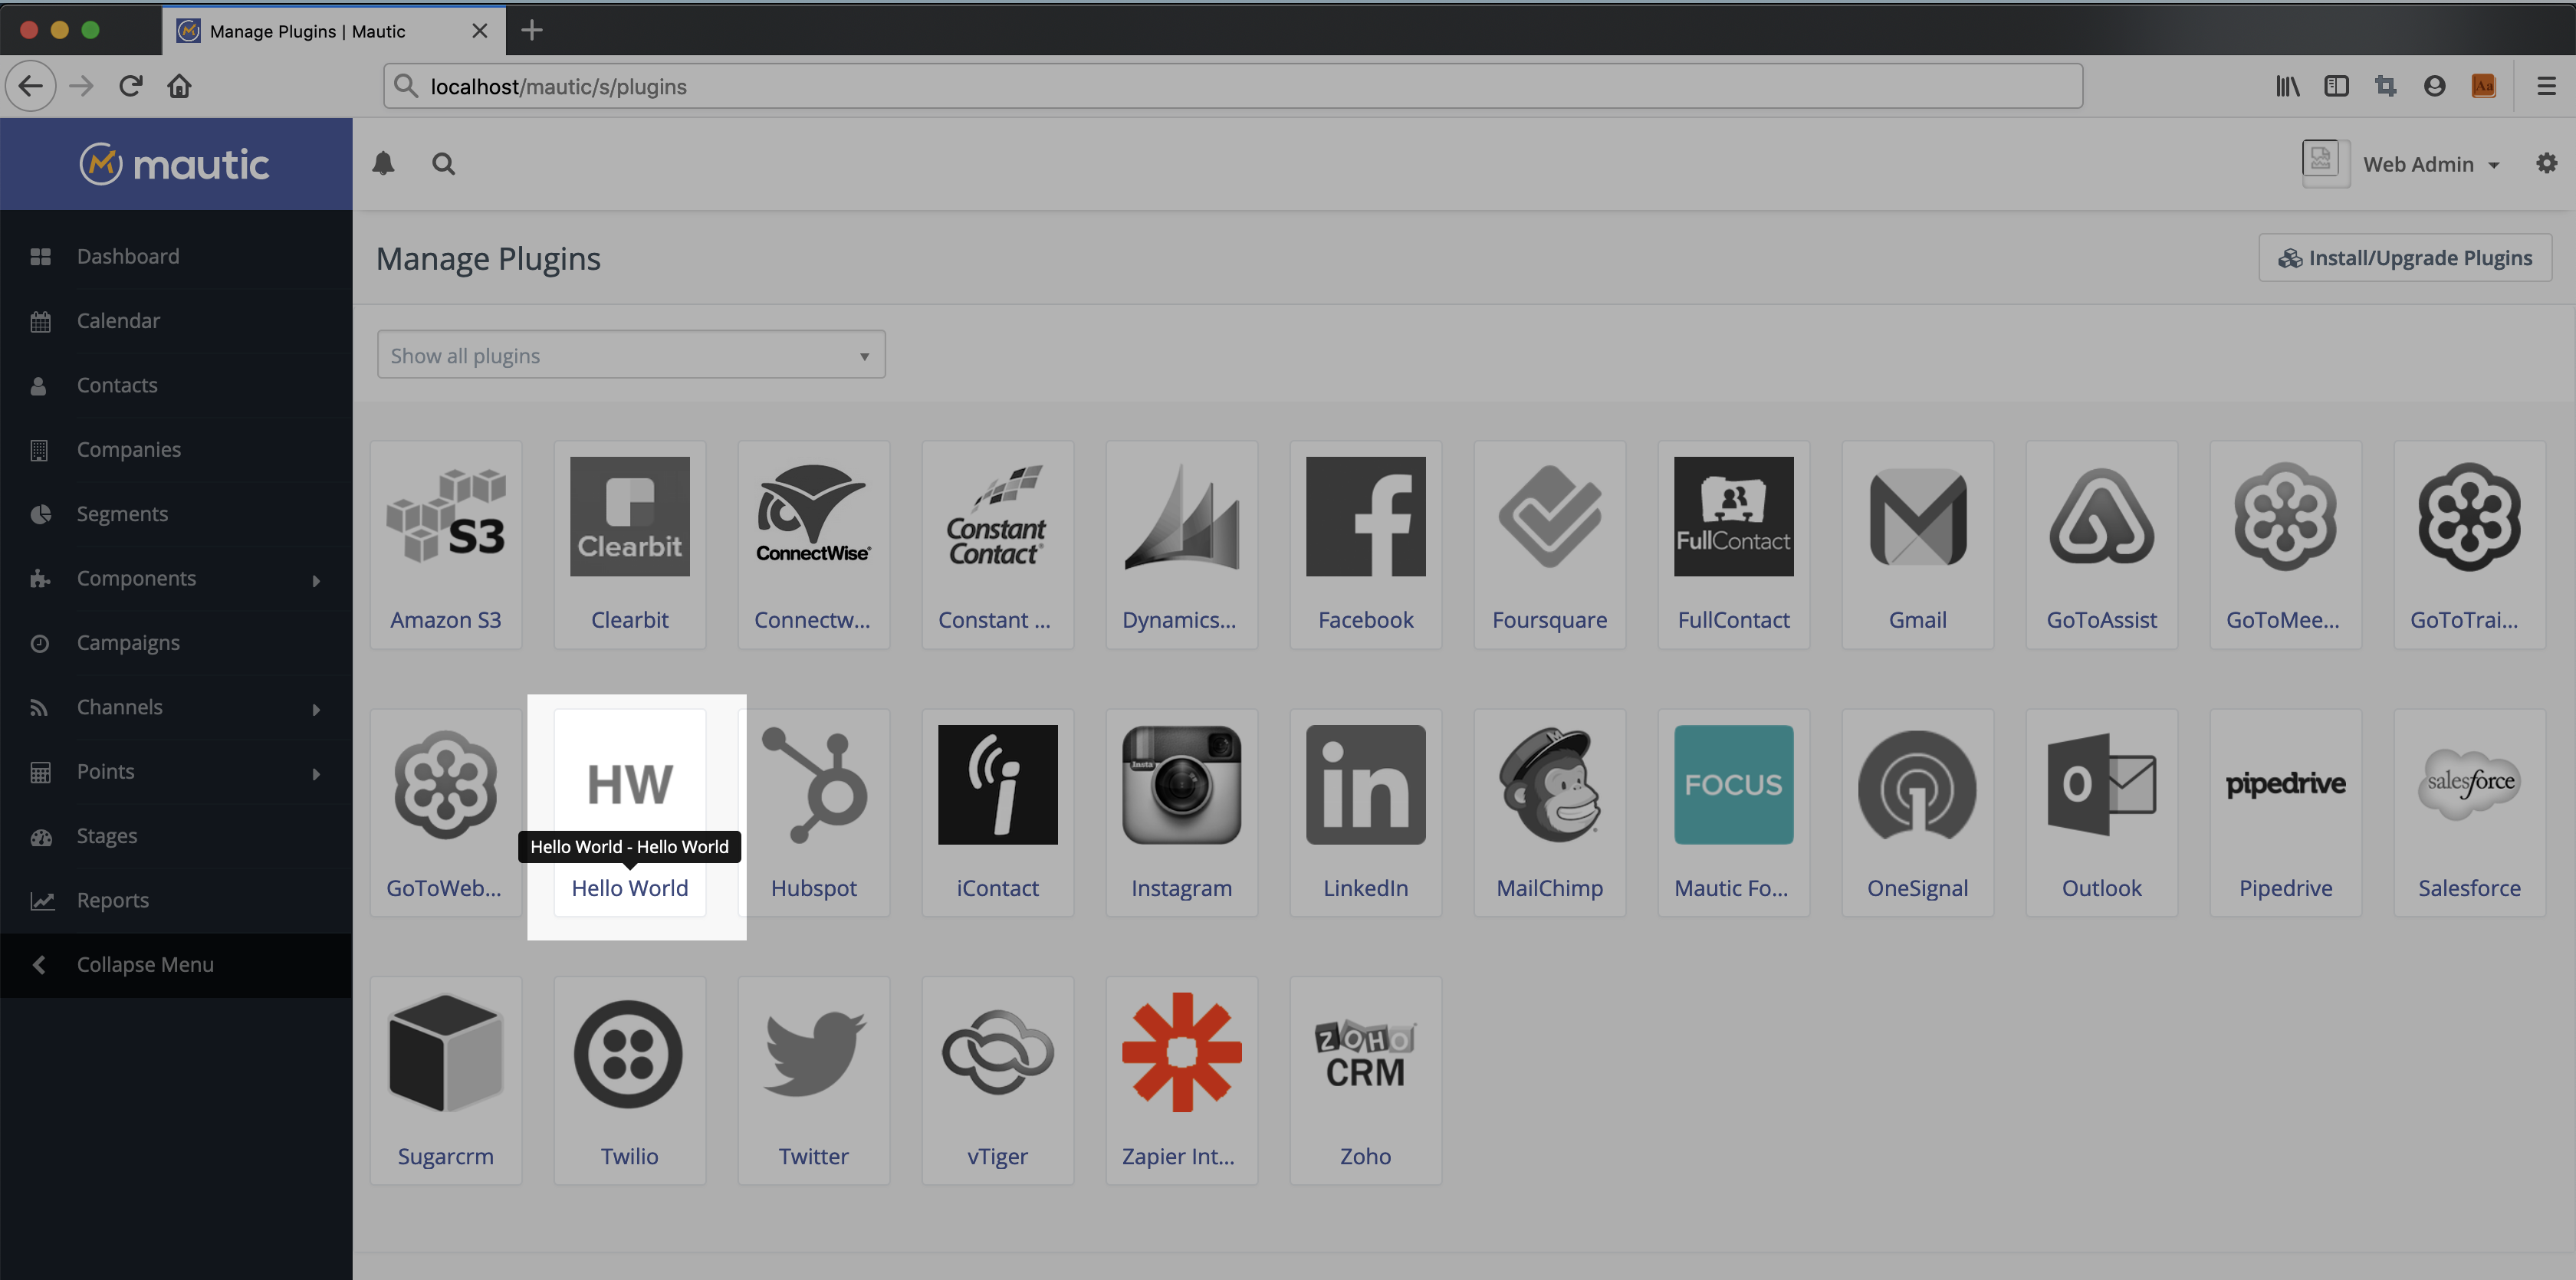 Icon of HelloWorld plugin highlighted in the listing